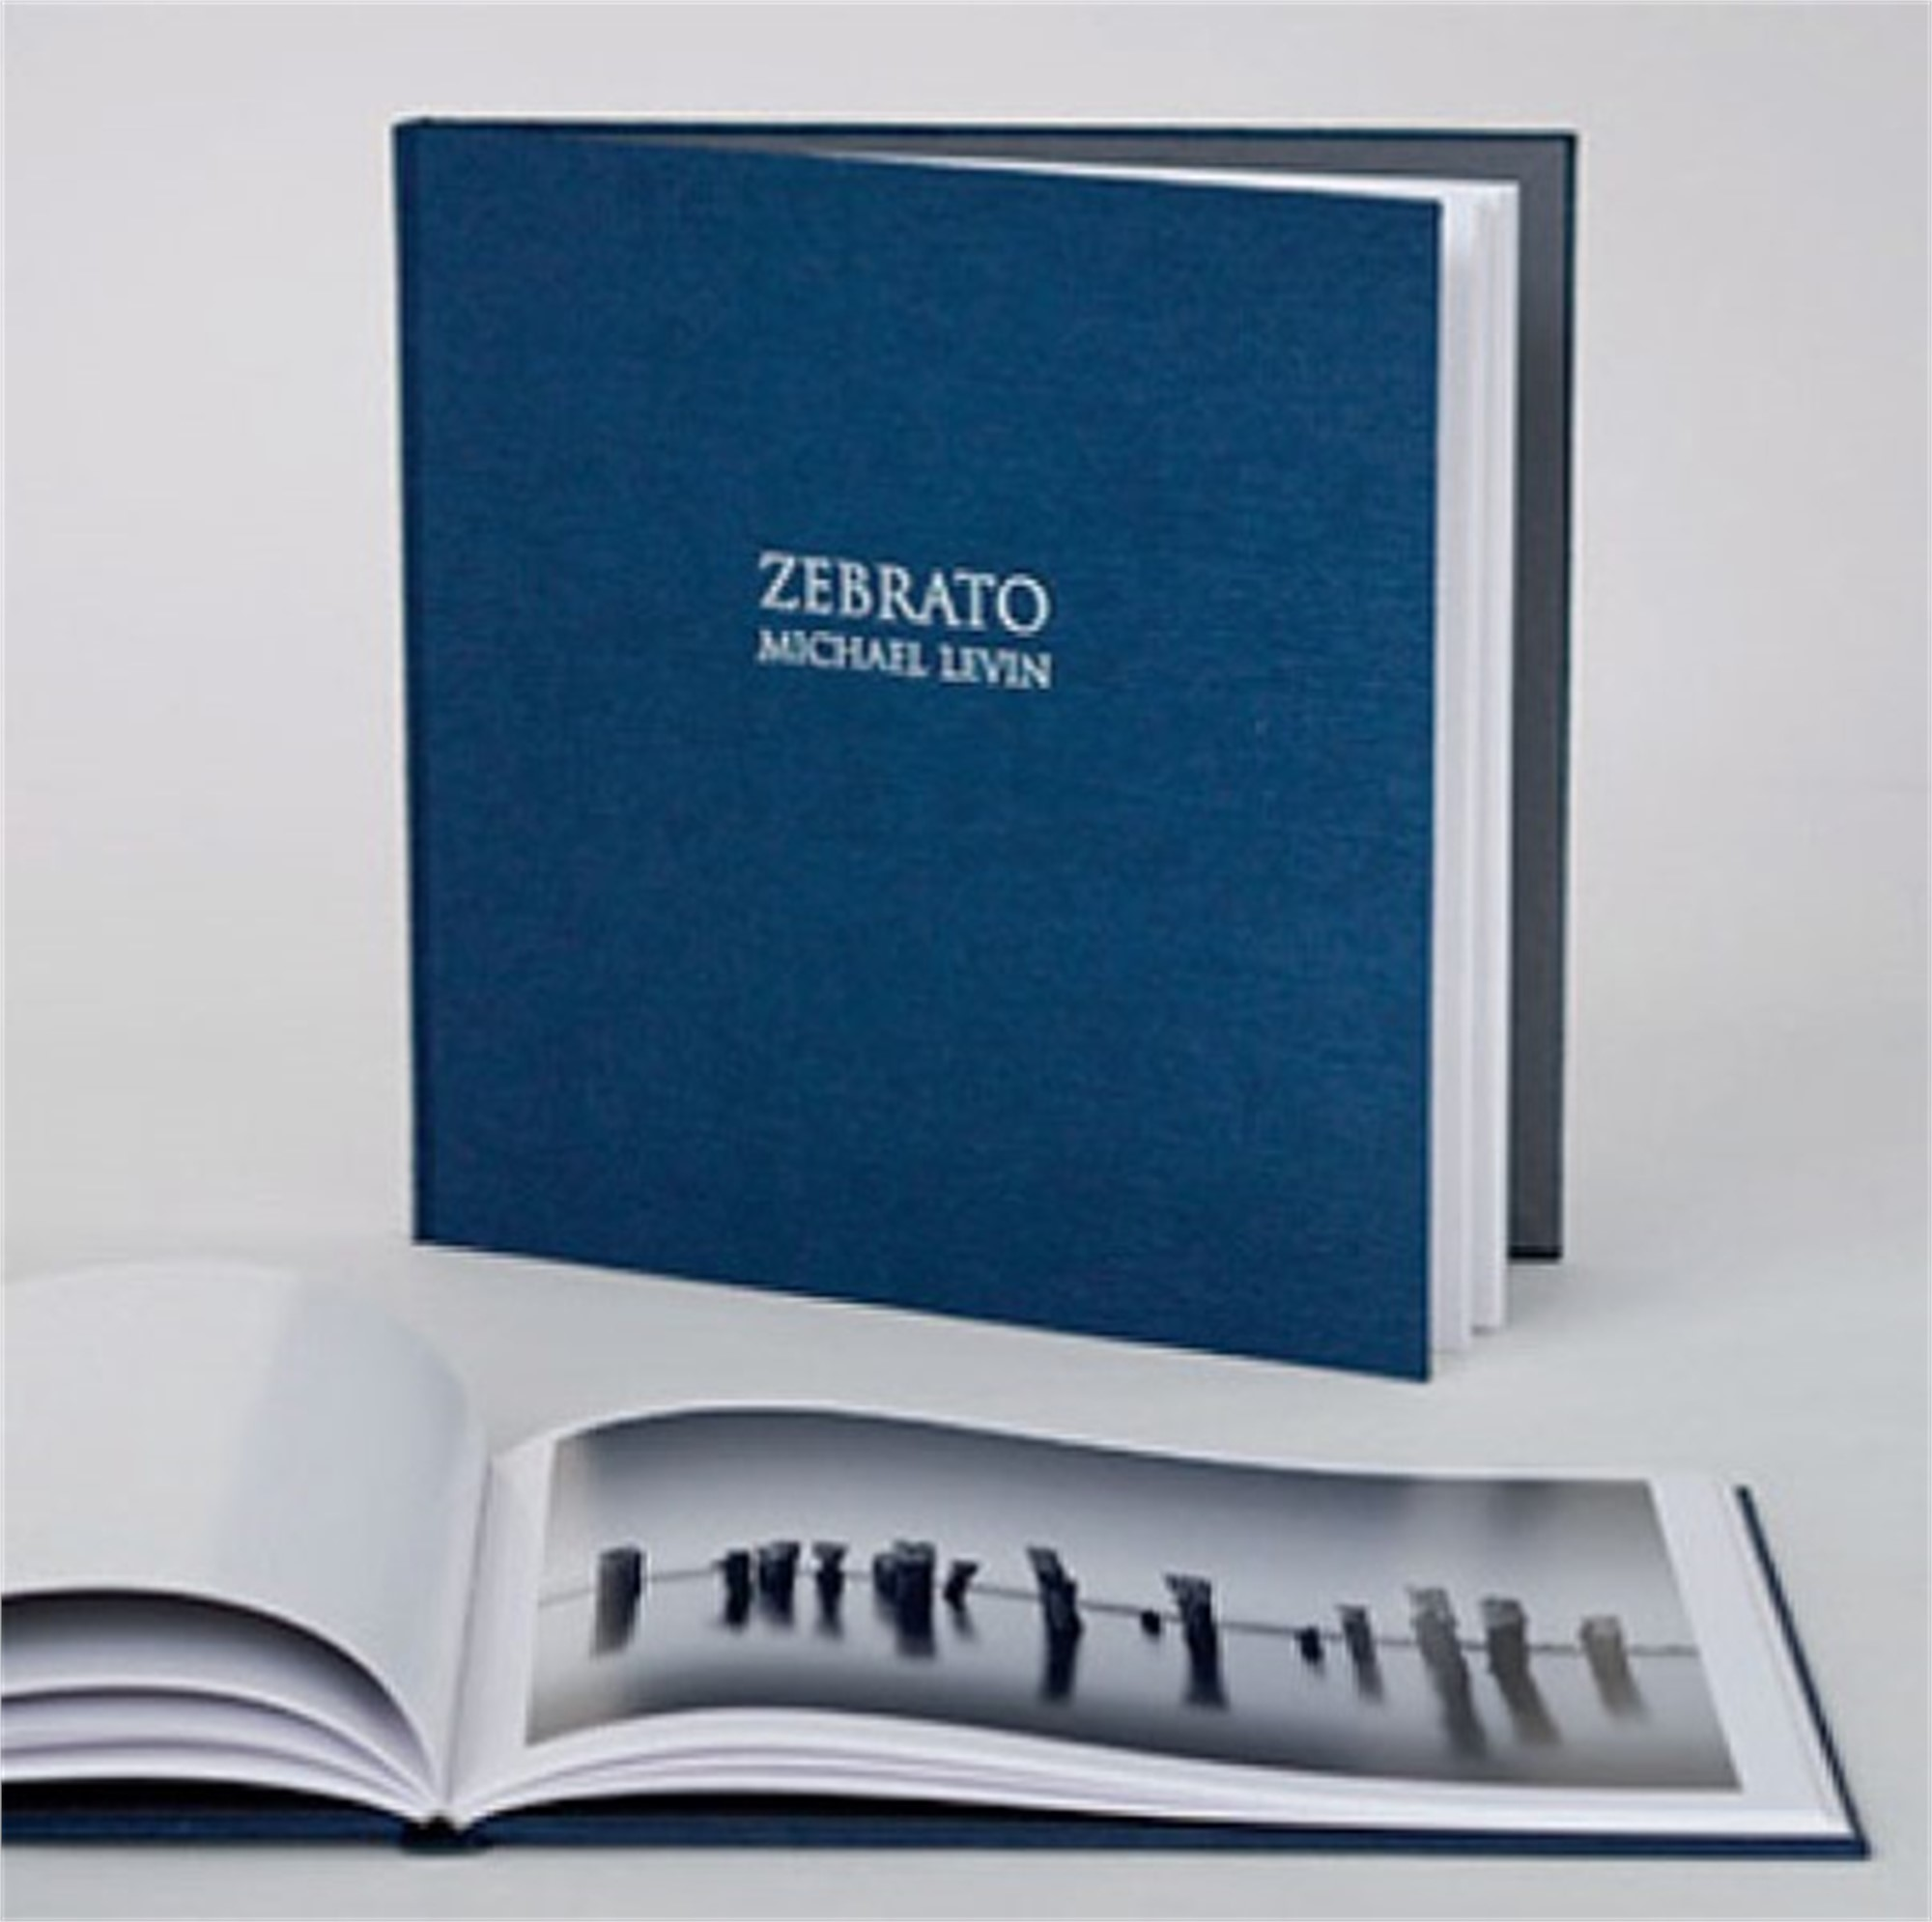 Zebrato - Deluxe Edition Book by Michael Levin